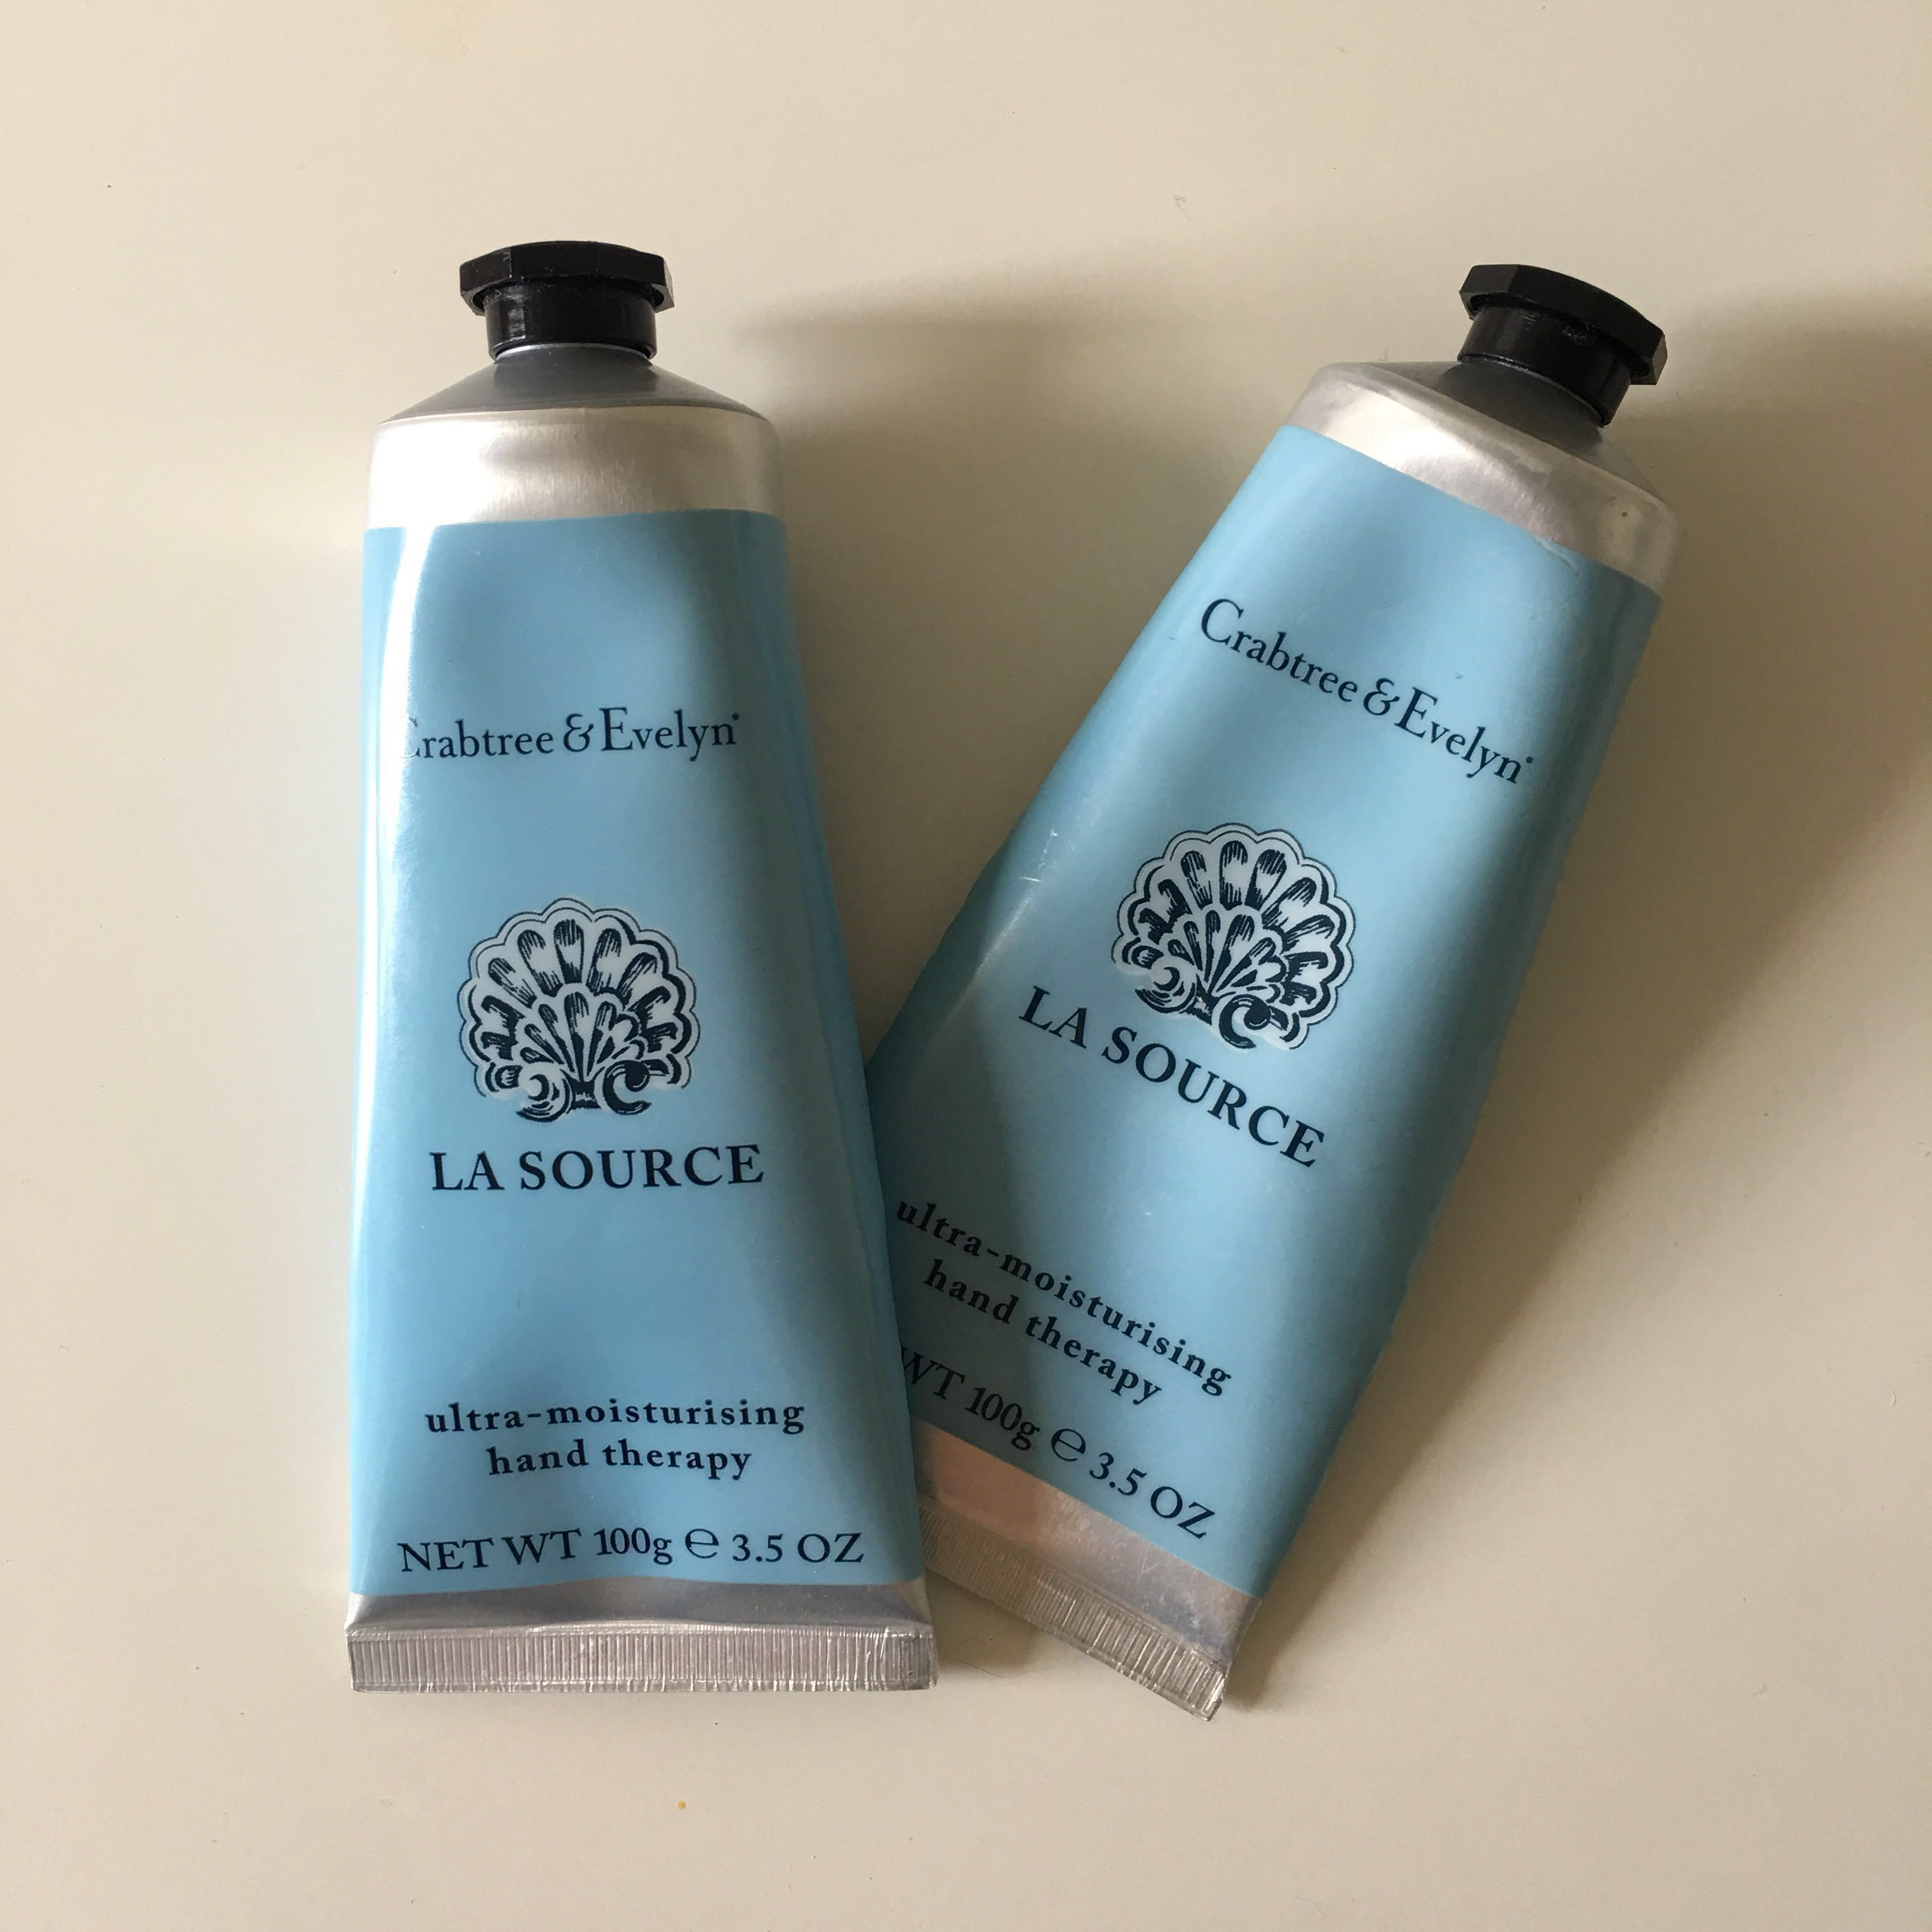 Crabtree & Evelyn hand cream full size x2